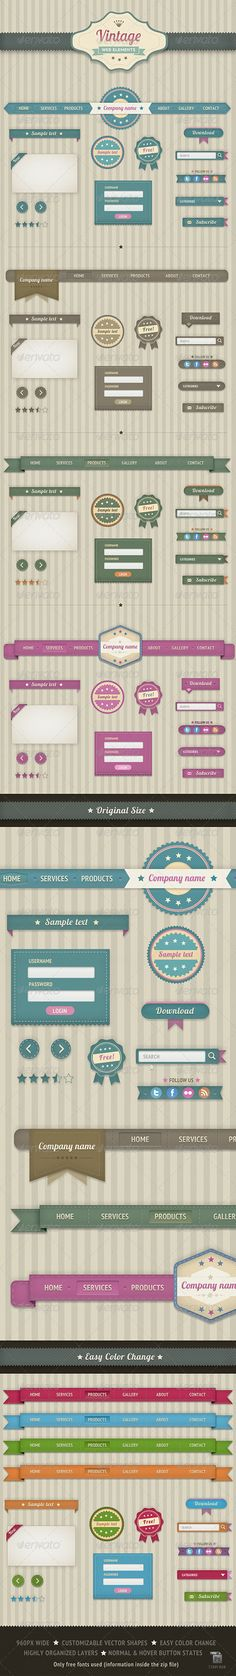 vintage web elements $5 via graphicriver